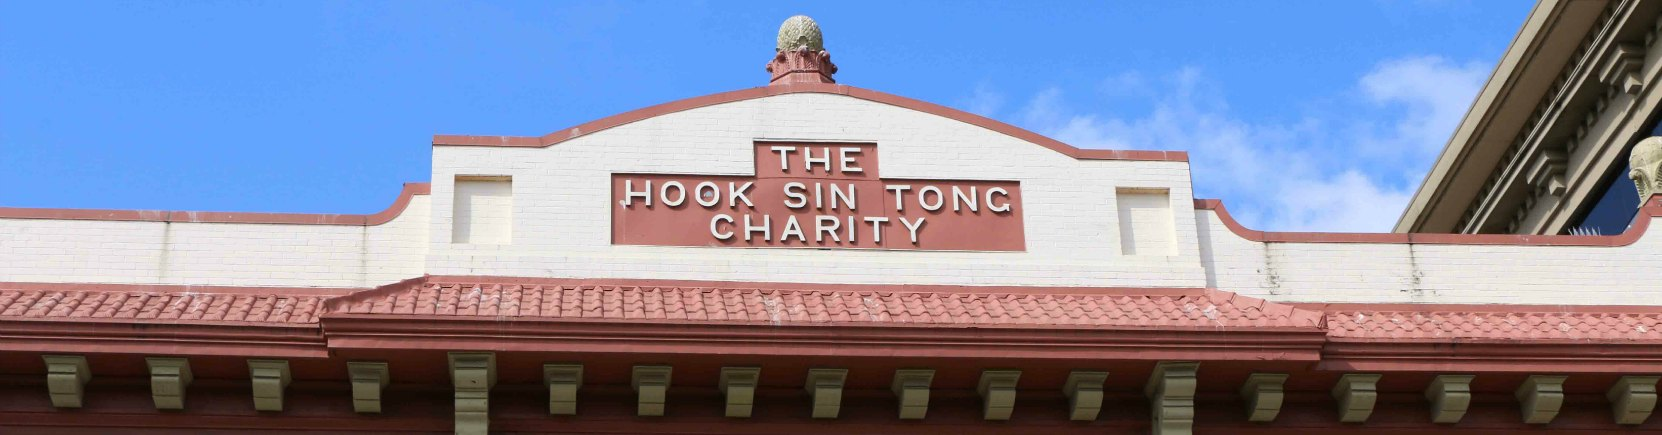 Our web header image for the Hook Sin Tong Charity building